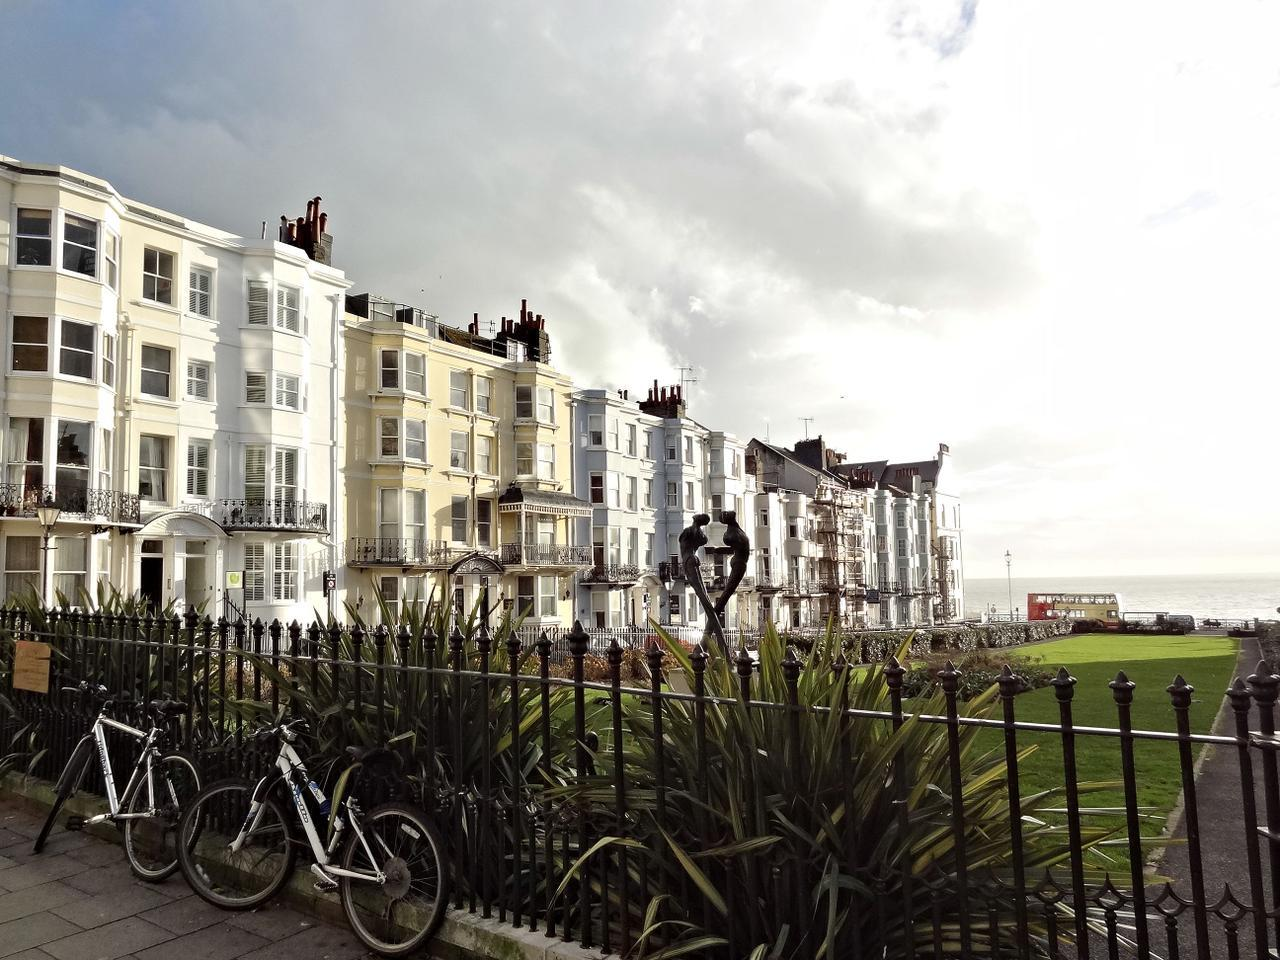 New Steine Apartment , Brighton & Hove Images - 7